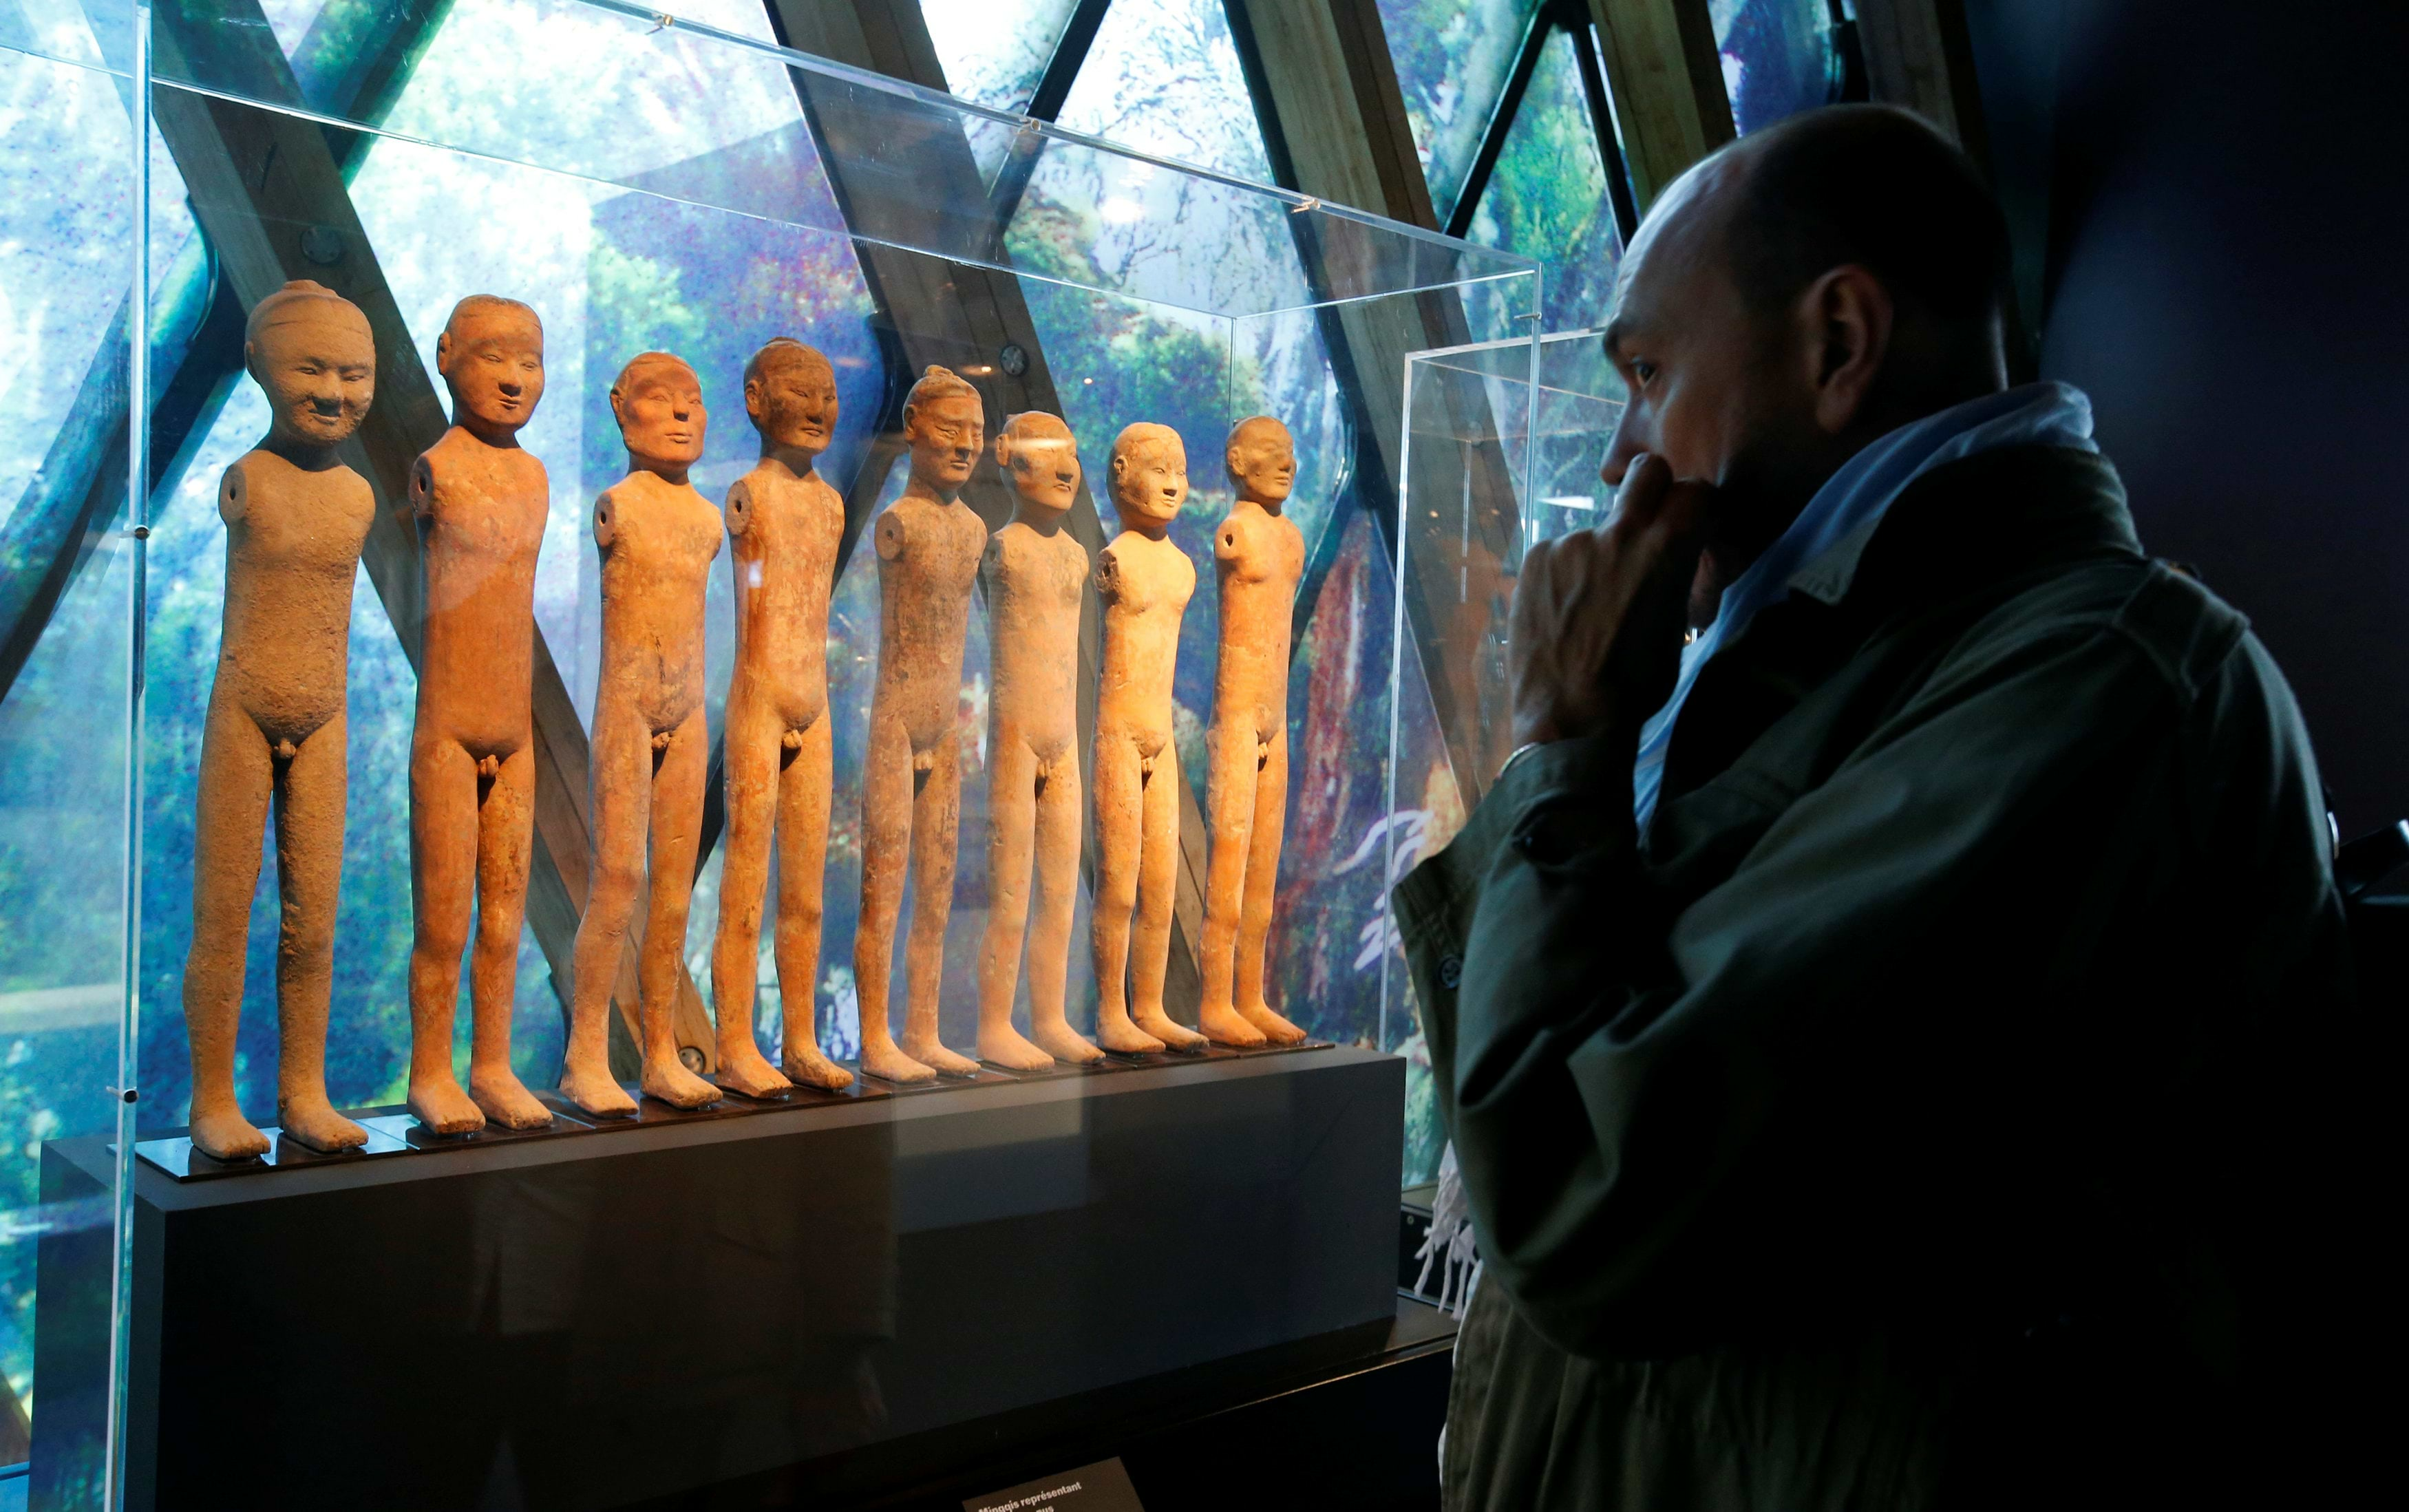 "A visitor looks at Mingqi figurines (Western Han period) during a press visit of the exhibition ""Jacques Chirac ou le dialogue des cultures"" at the Musee du quai Branly in Paris, France, June 20, 2016. This major exhibition is devoted to former French President Chirac, the Quai Branly Museum founder, who was passionate about non-European arts and different civilizations. REUTERS/Jacky Naegelen"